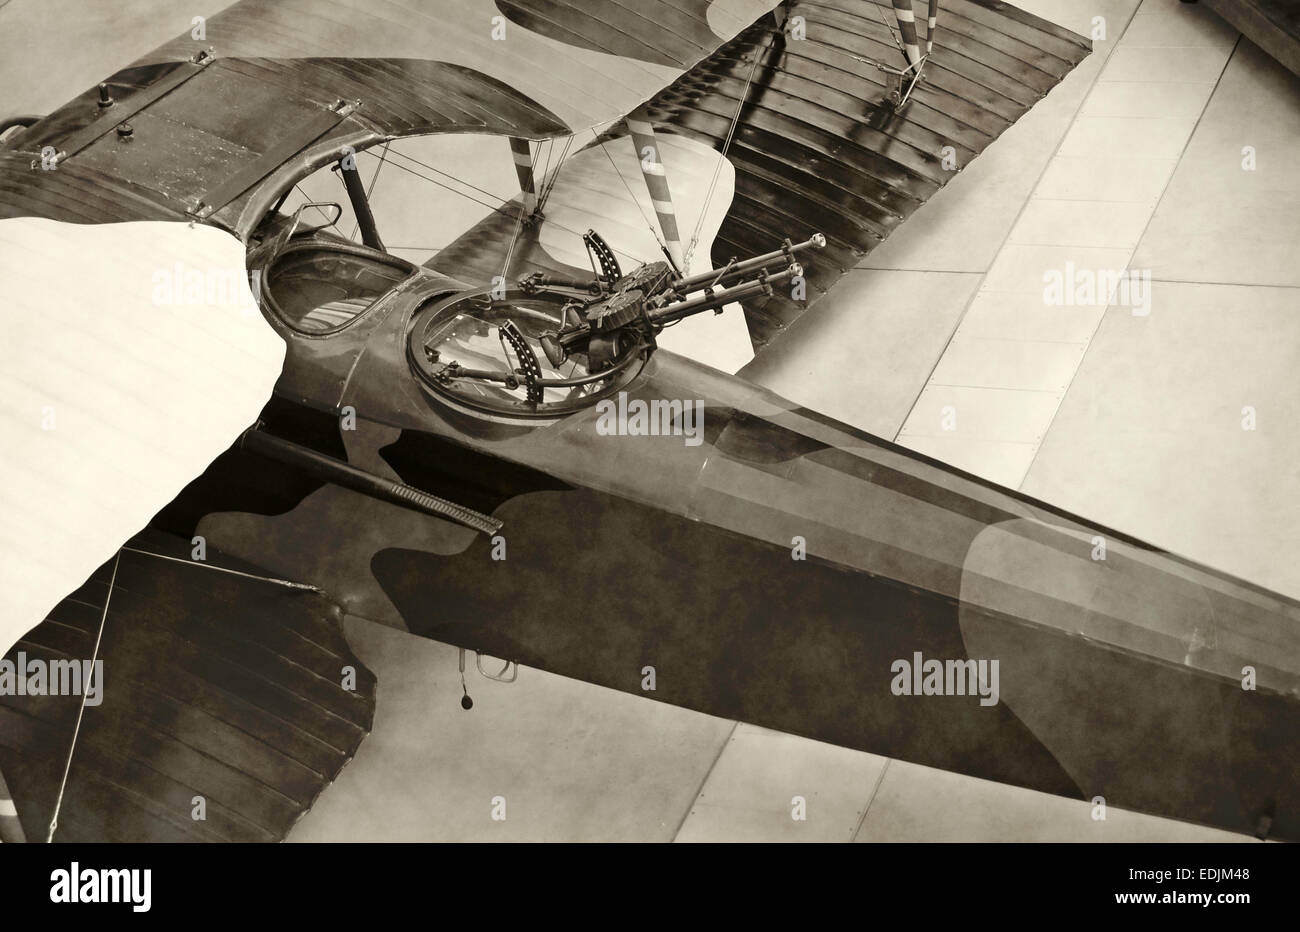 World War I era military airplane stained black and white - Stock Image